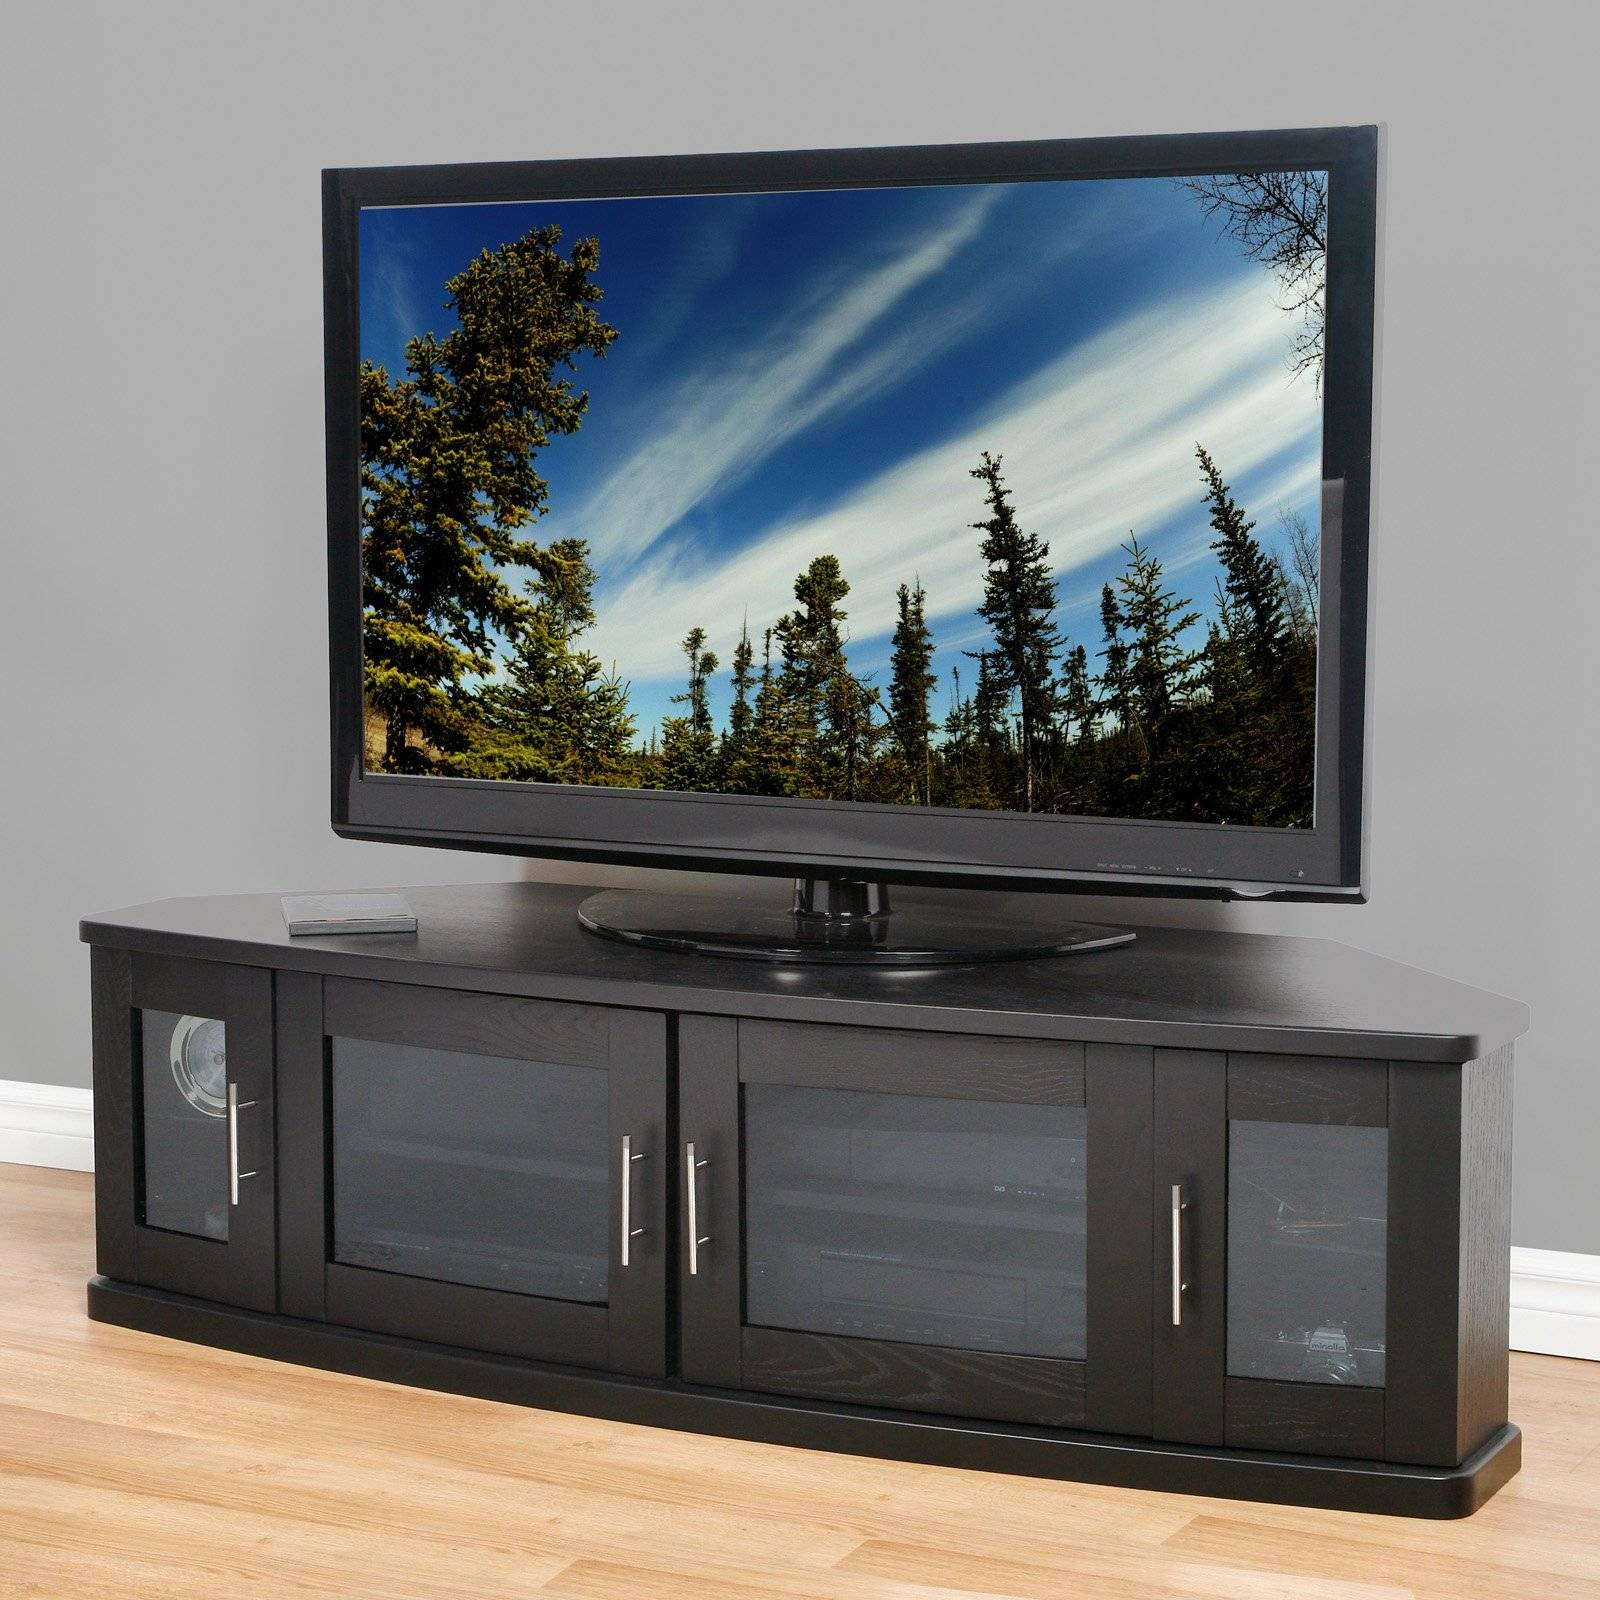 Plateau Newport 62 Inch Corner Tv Stand In Black | Hayneedle With Corner Tv Tables Stands (View 9 of 15)